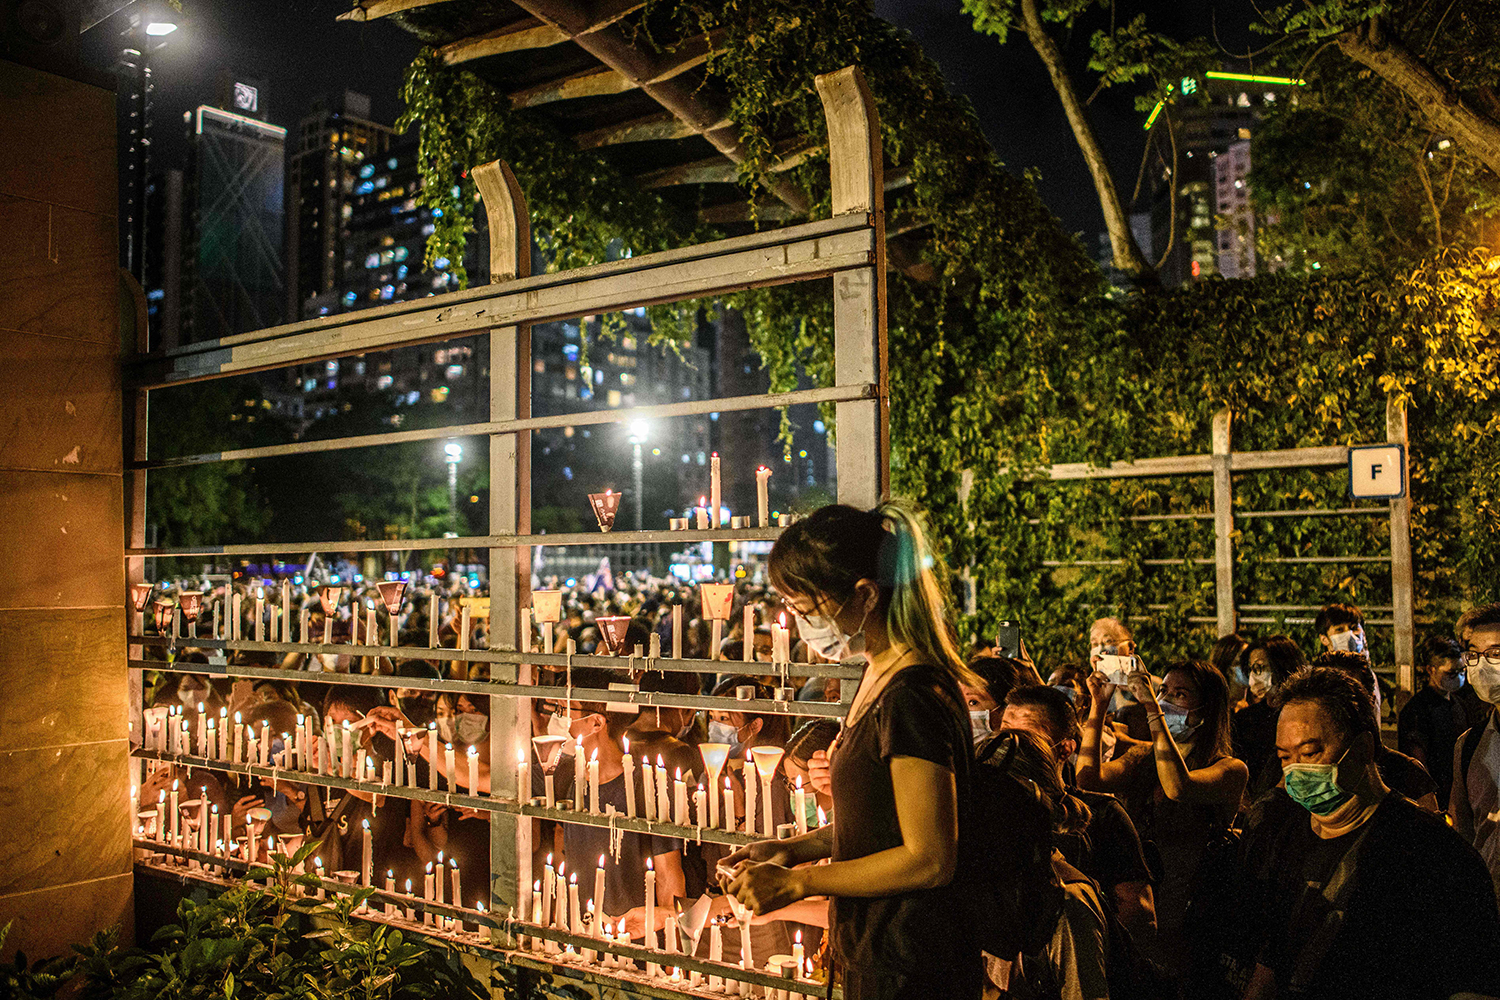 People light candles as they attend a vigil in Victoria Park in Hong Kong on June 4 marking the anniversary of China's deadly Tiananmen Square crackdown, defying a ban against gathering as tensions seethed over a planned new security law. ANTHONY WALLACE/AFP via Getty Images